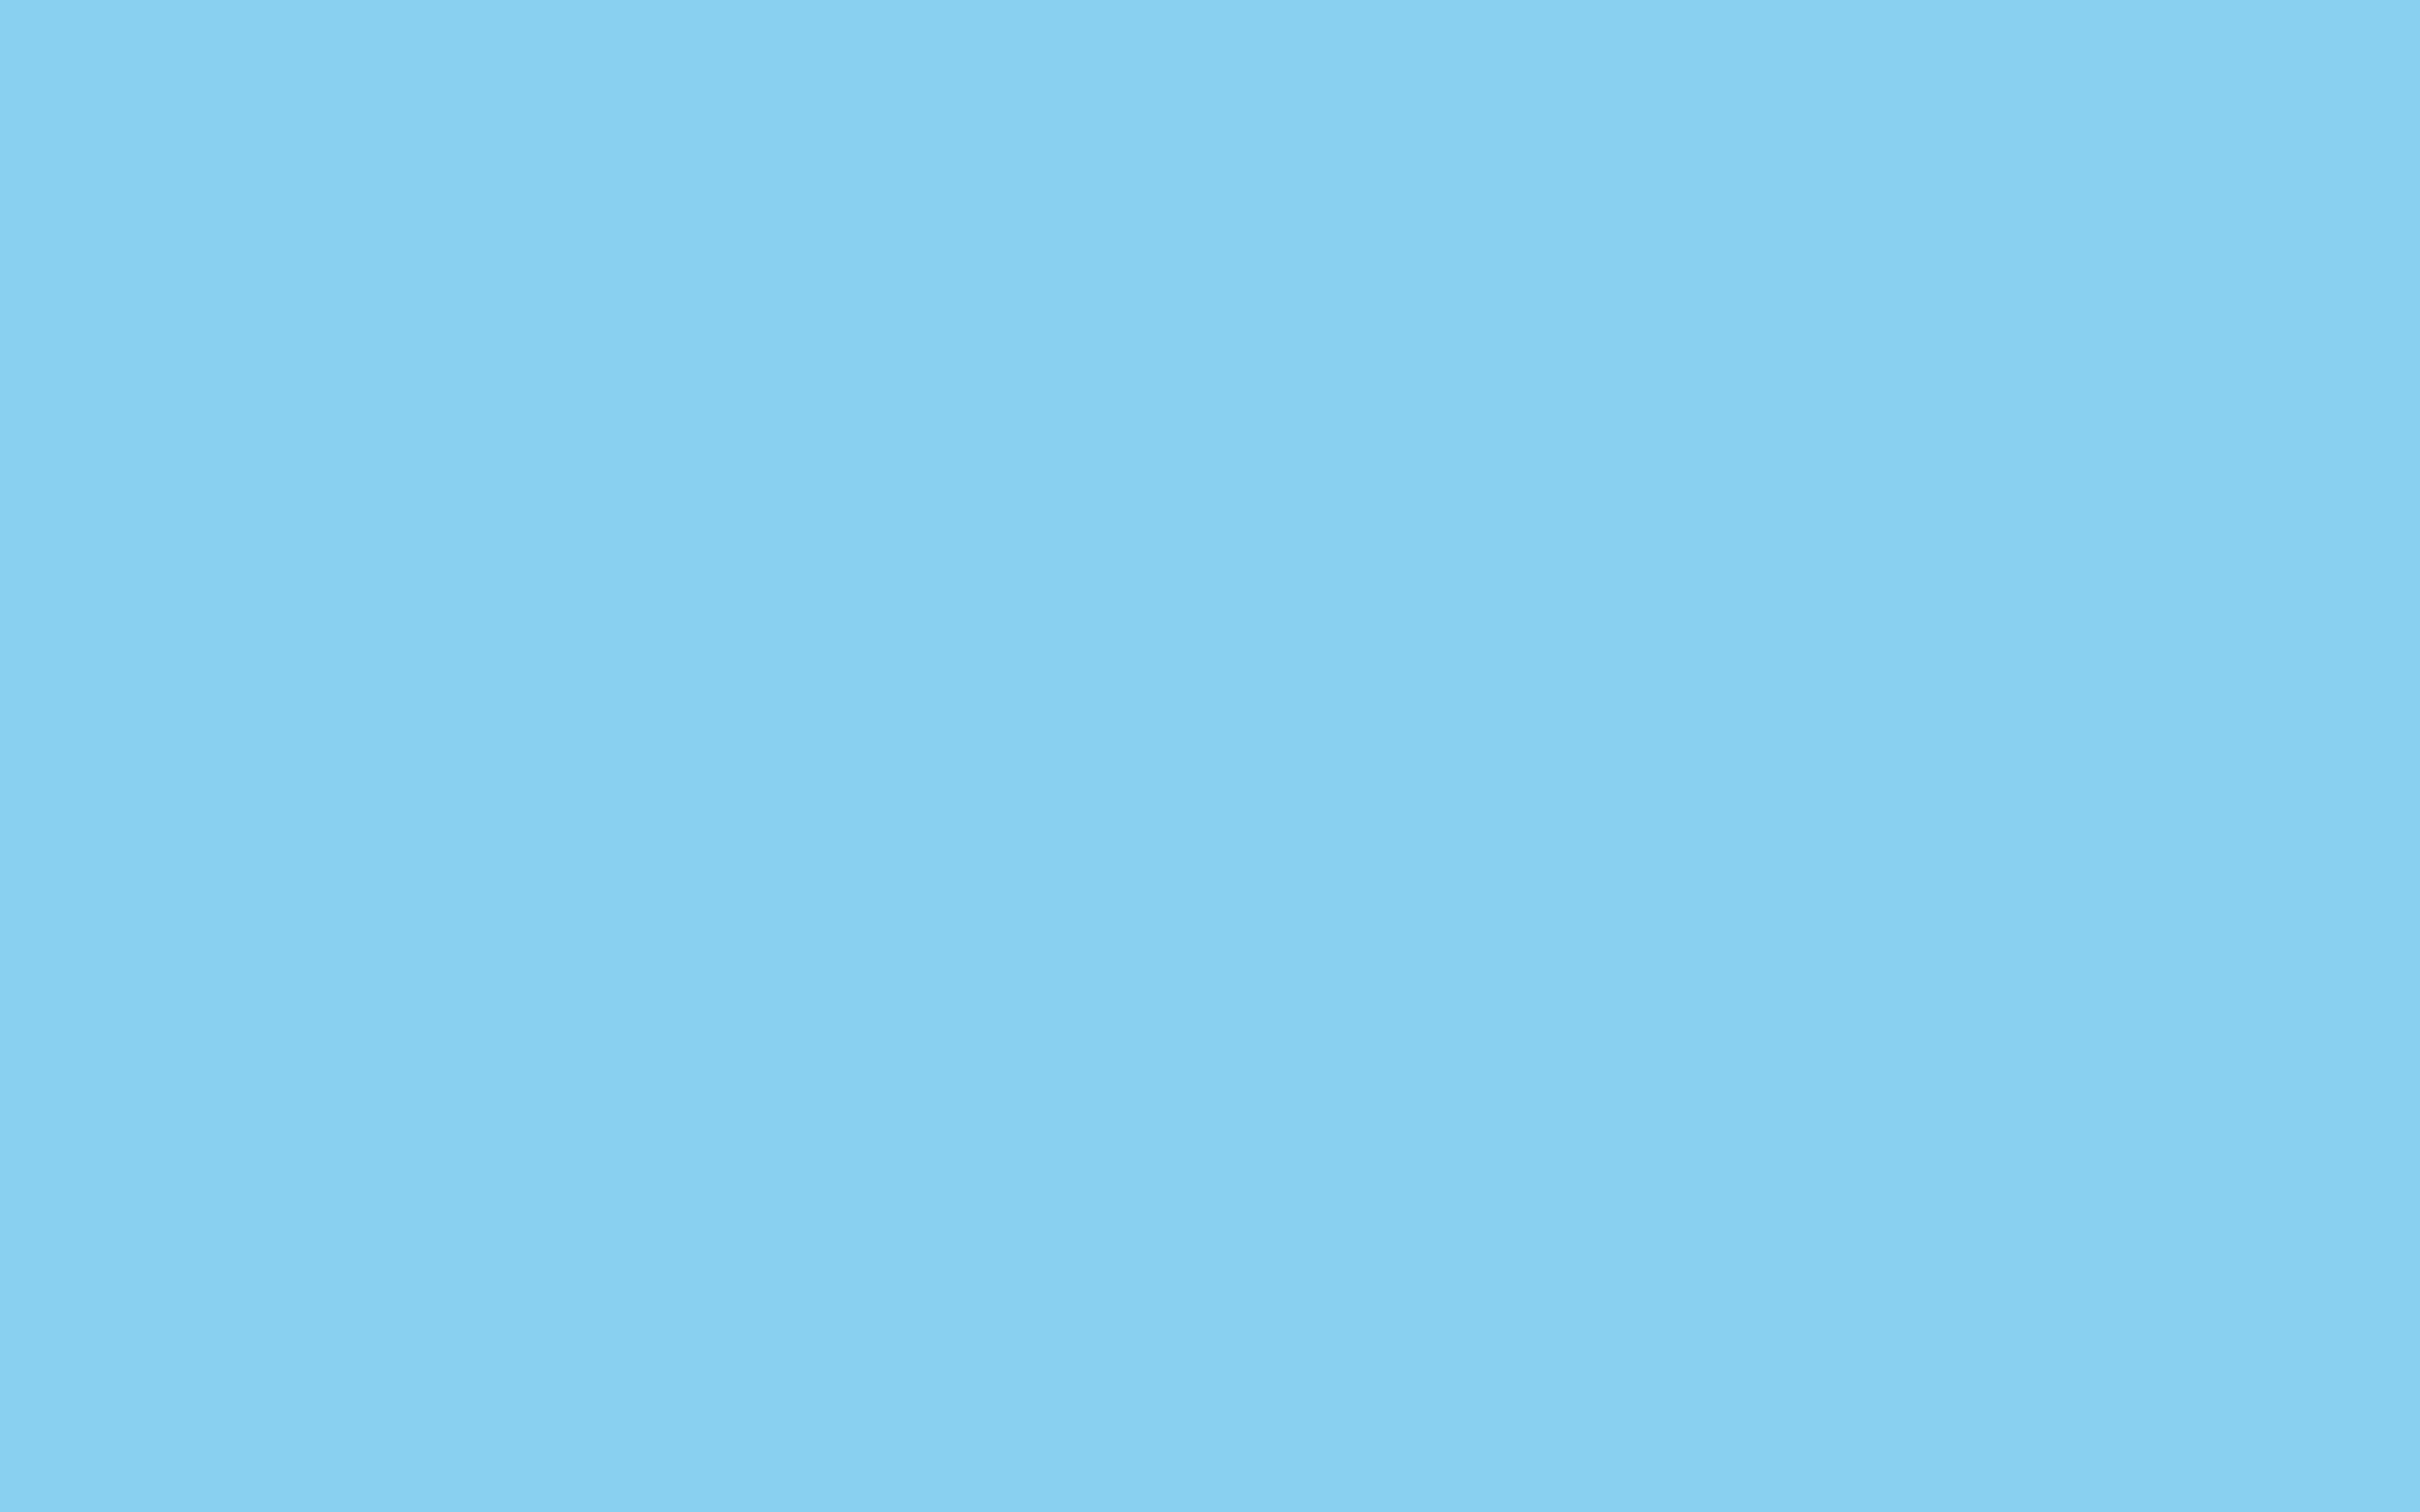 2560x1600 Baby Blue Solid Color Background